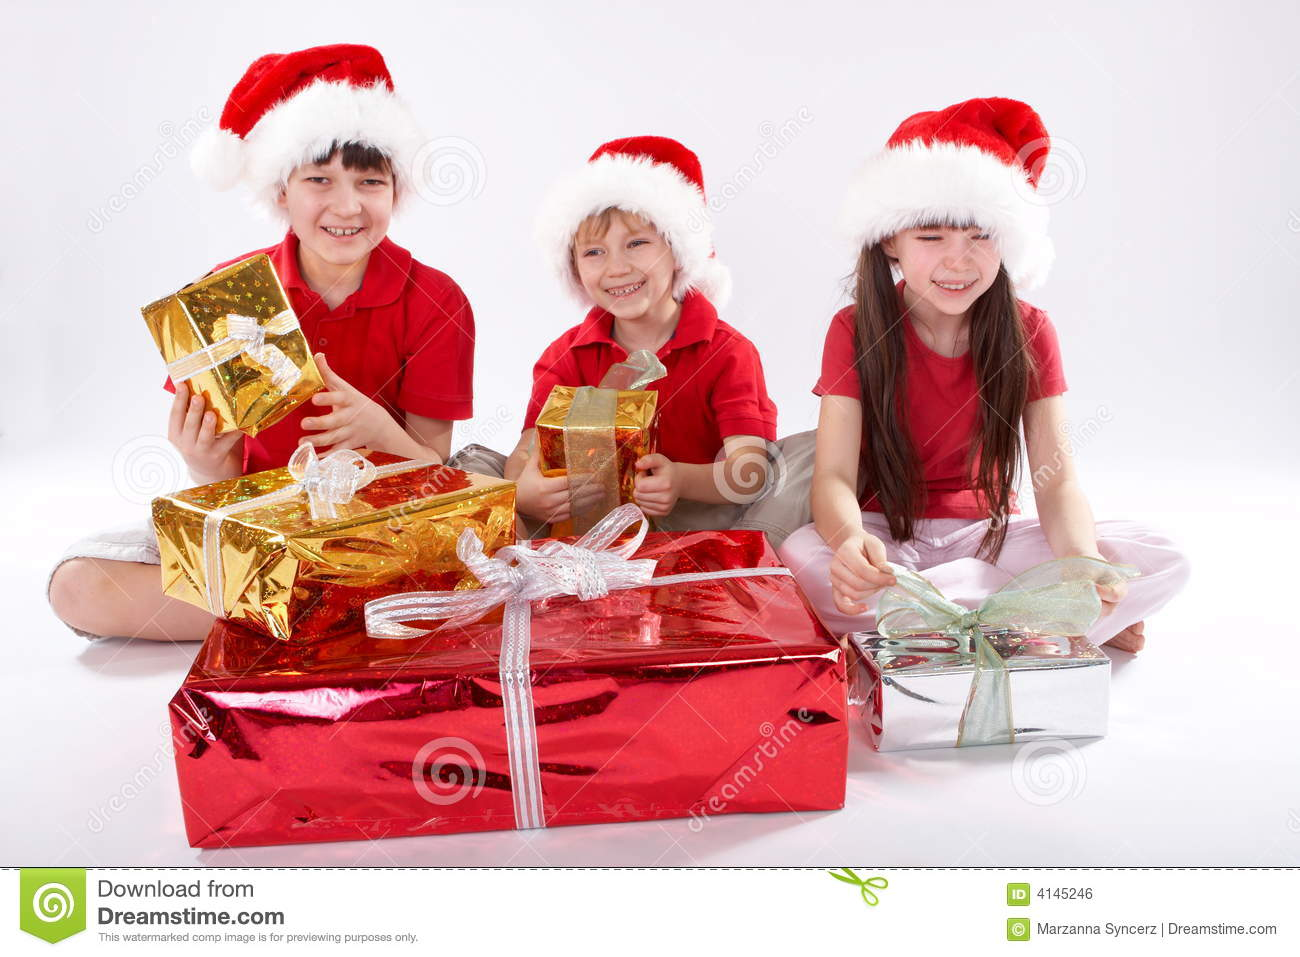 Kids Opening Christmas Gifts Stock Photo - Image of legs, gifts: 4145246